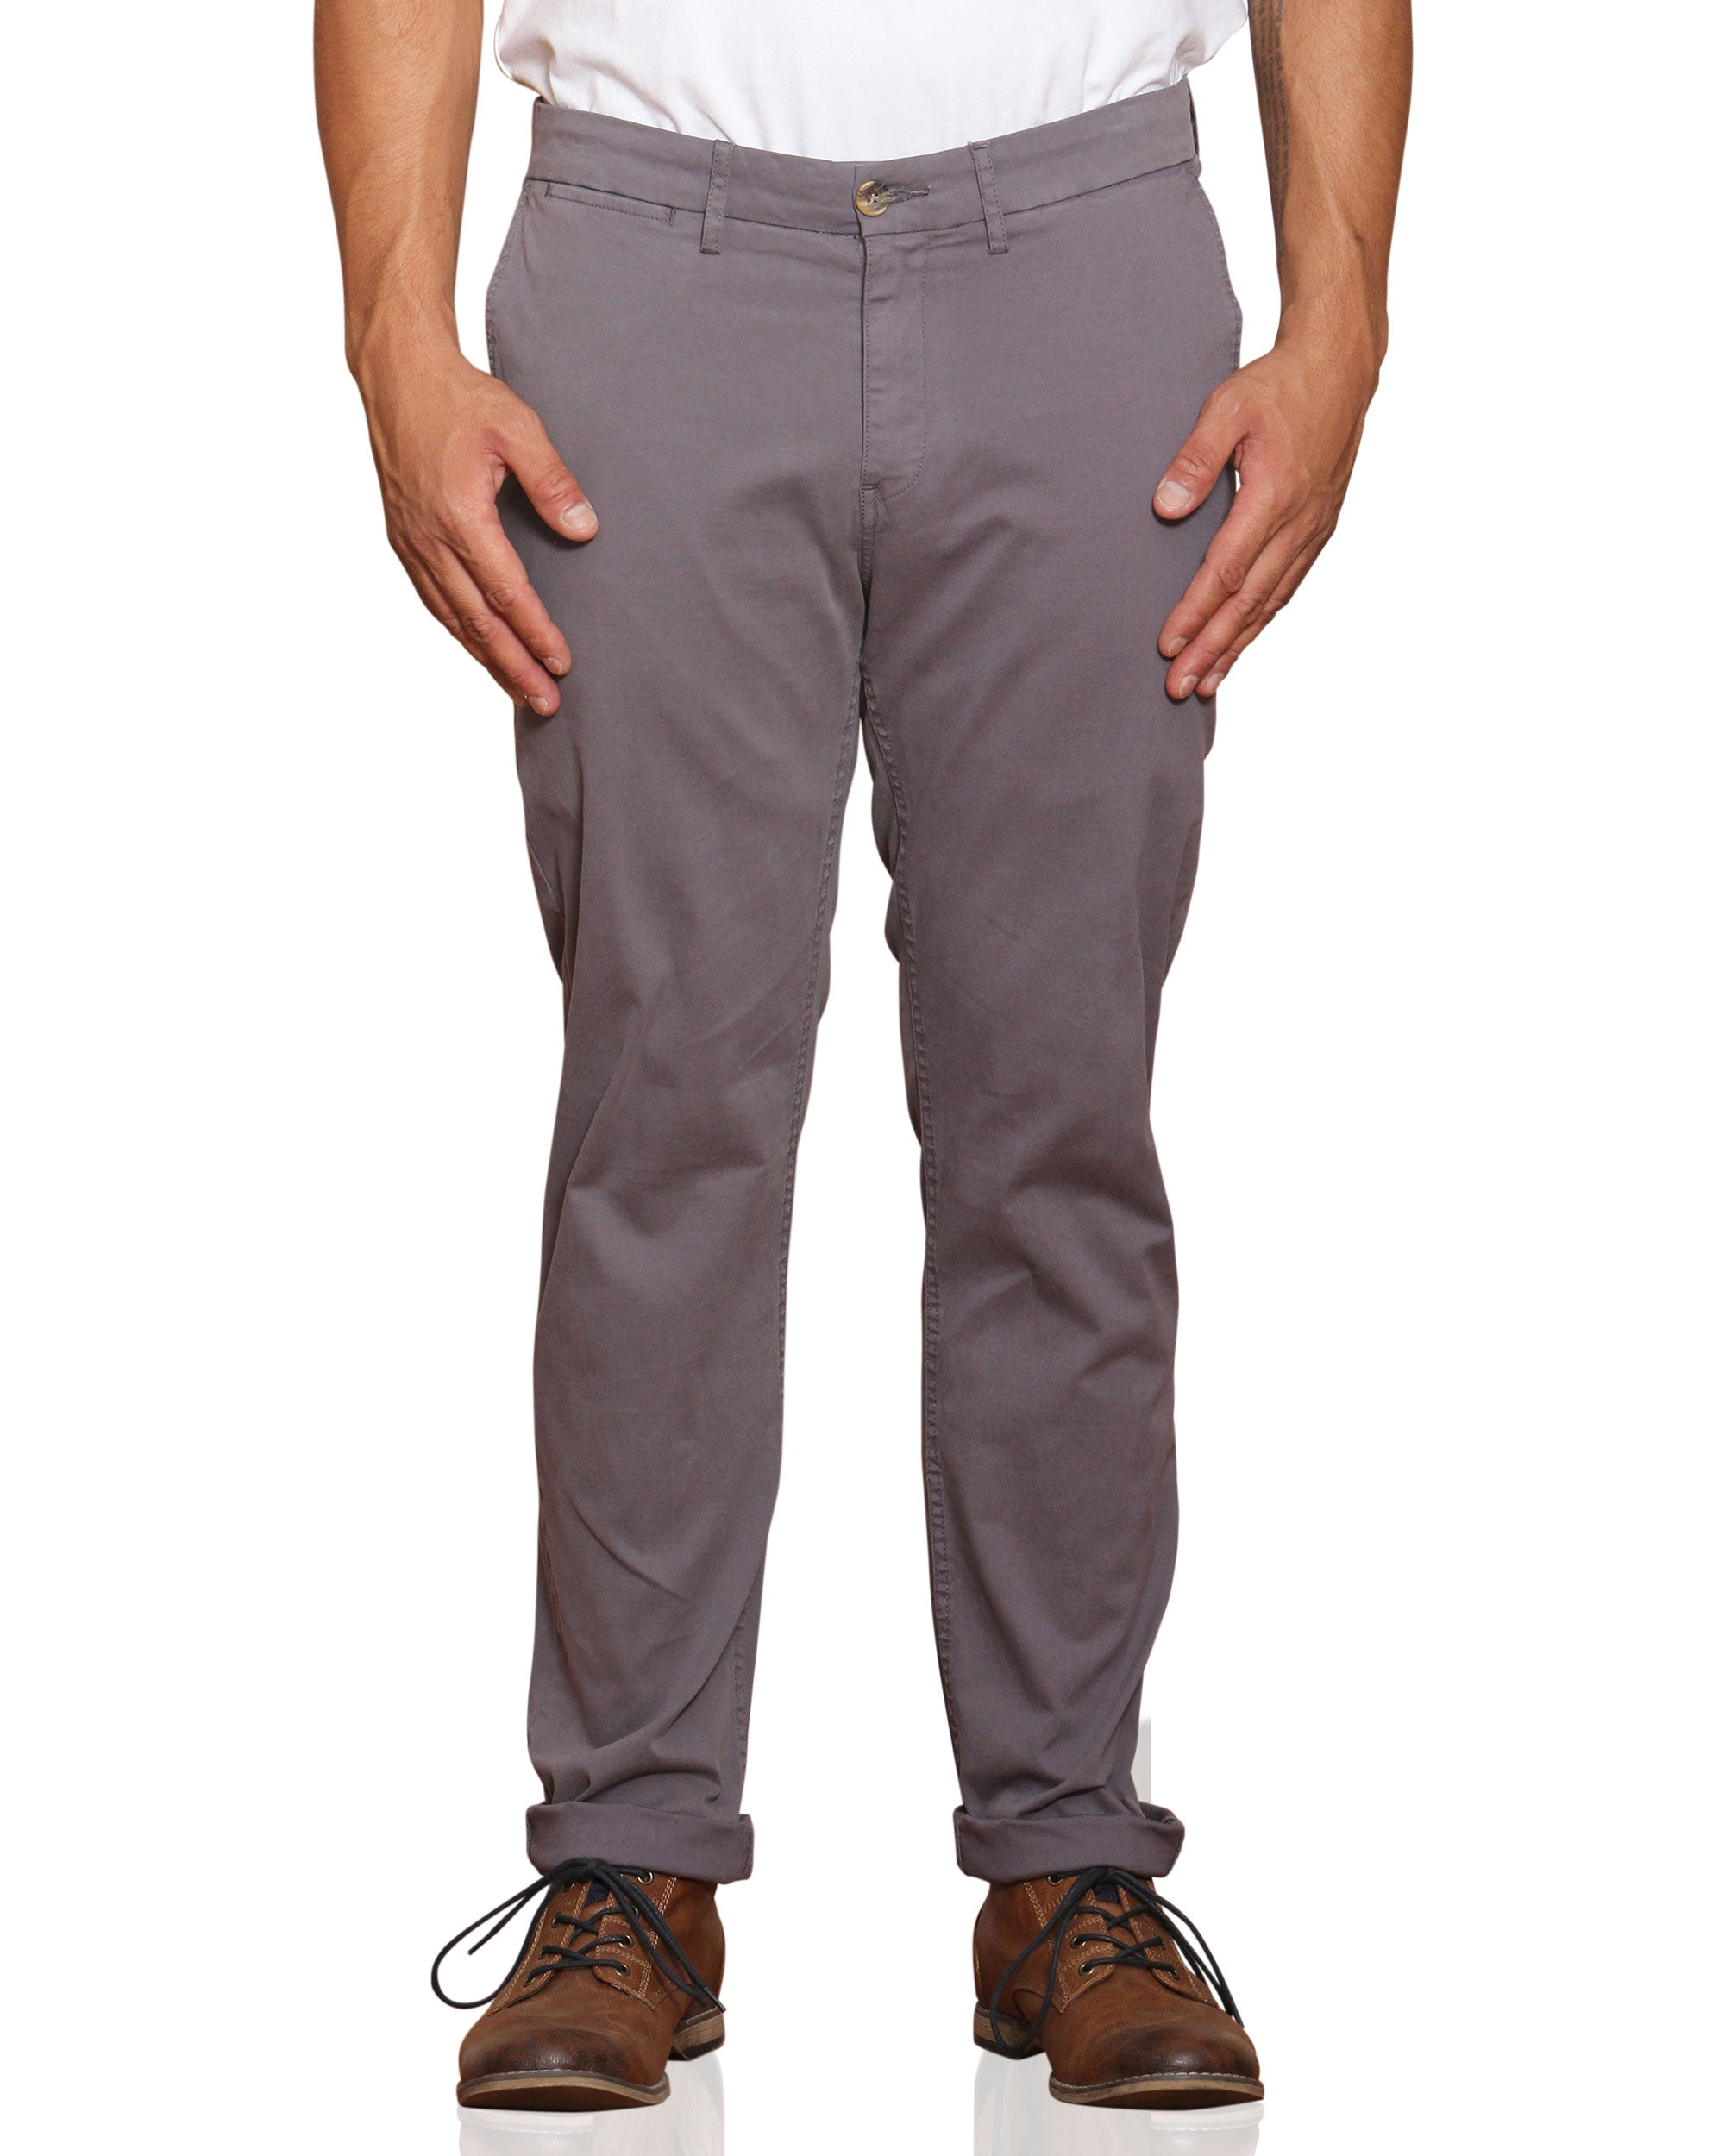 Core Slim Stretch Chino Pant - Steel Grey